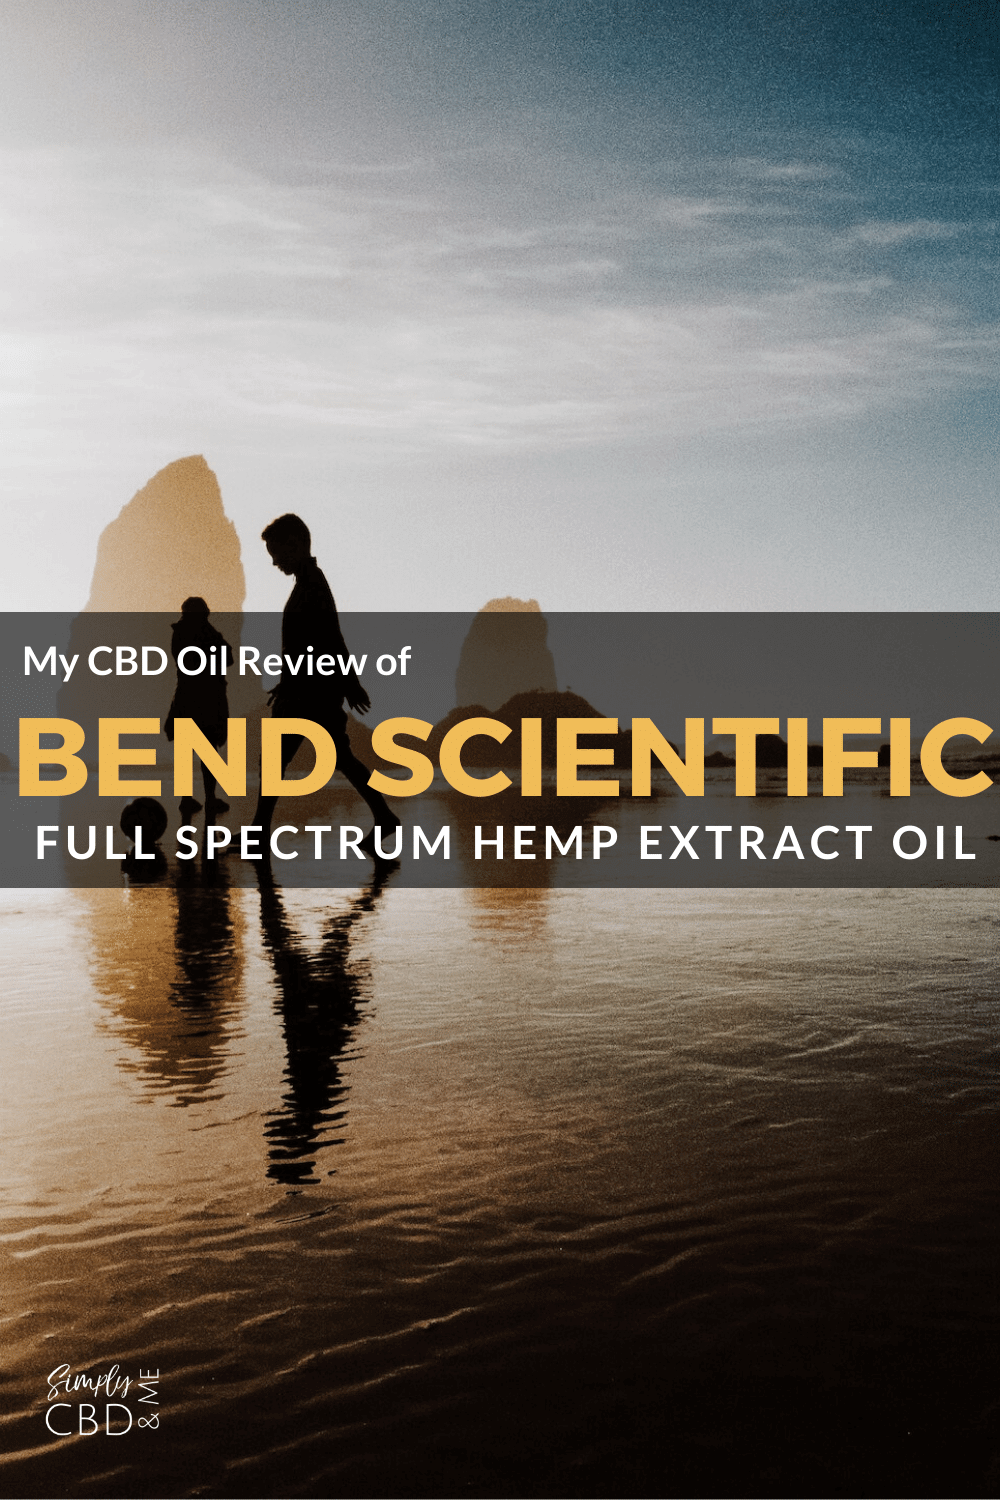 Read my CBD Oil Review of Bend Scientific Hemp Extract Oil and how it has changed my life!